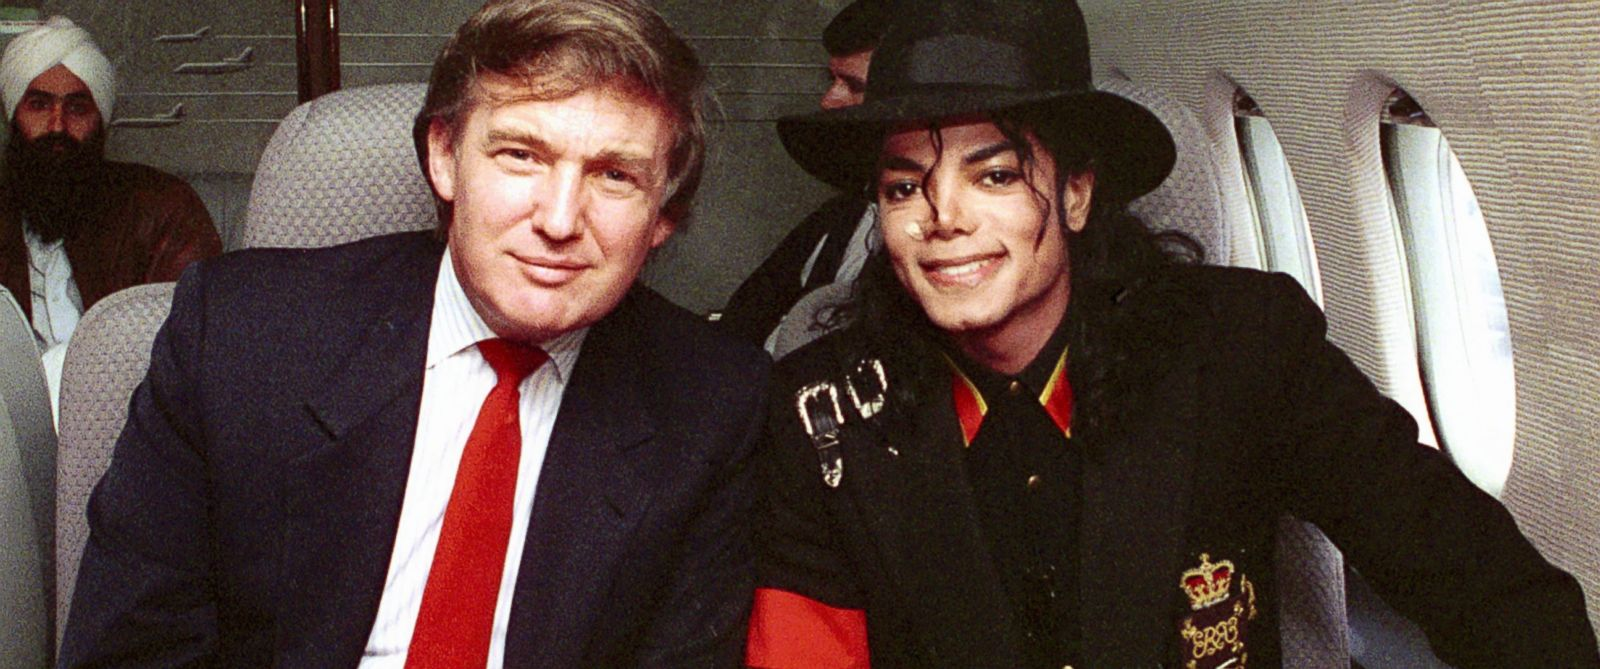 PHOTO: Donald Trump and Michael Jackson, right, are seen onboard a private plane, April 1, 1990.